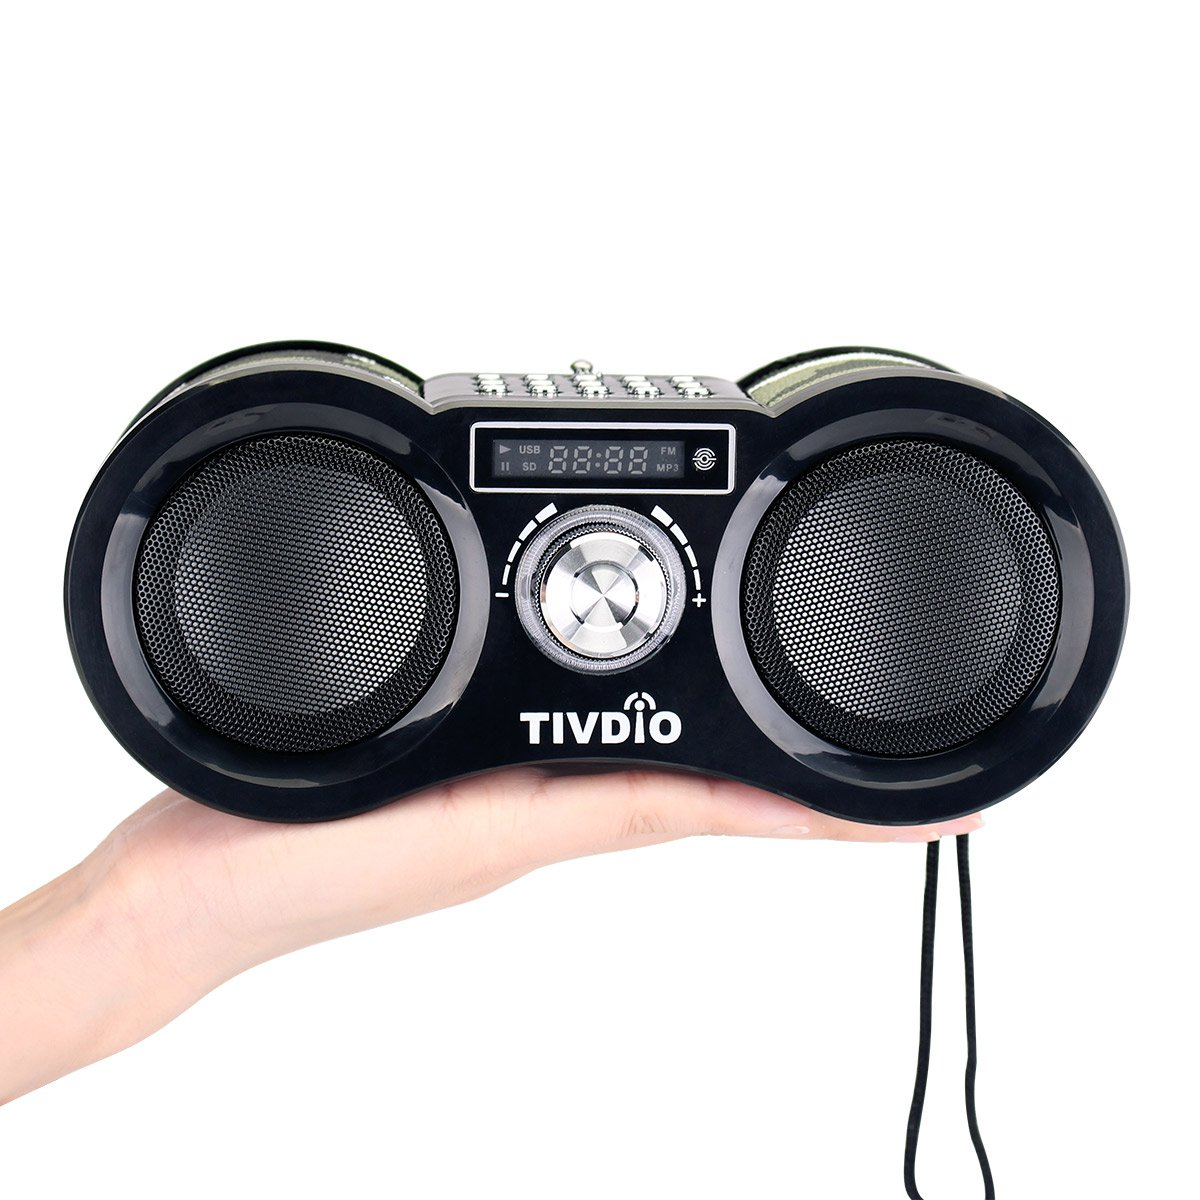 TIVDIO V-113 Portable Transistor FM Stereo Radio Support Mp3 Music Player Speaker Micro SD IF Card Aux Line In Remote(Camouflage) by TIVDIO (Image #9)